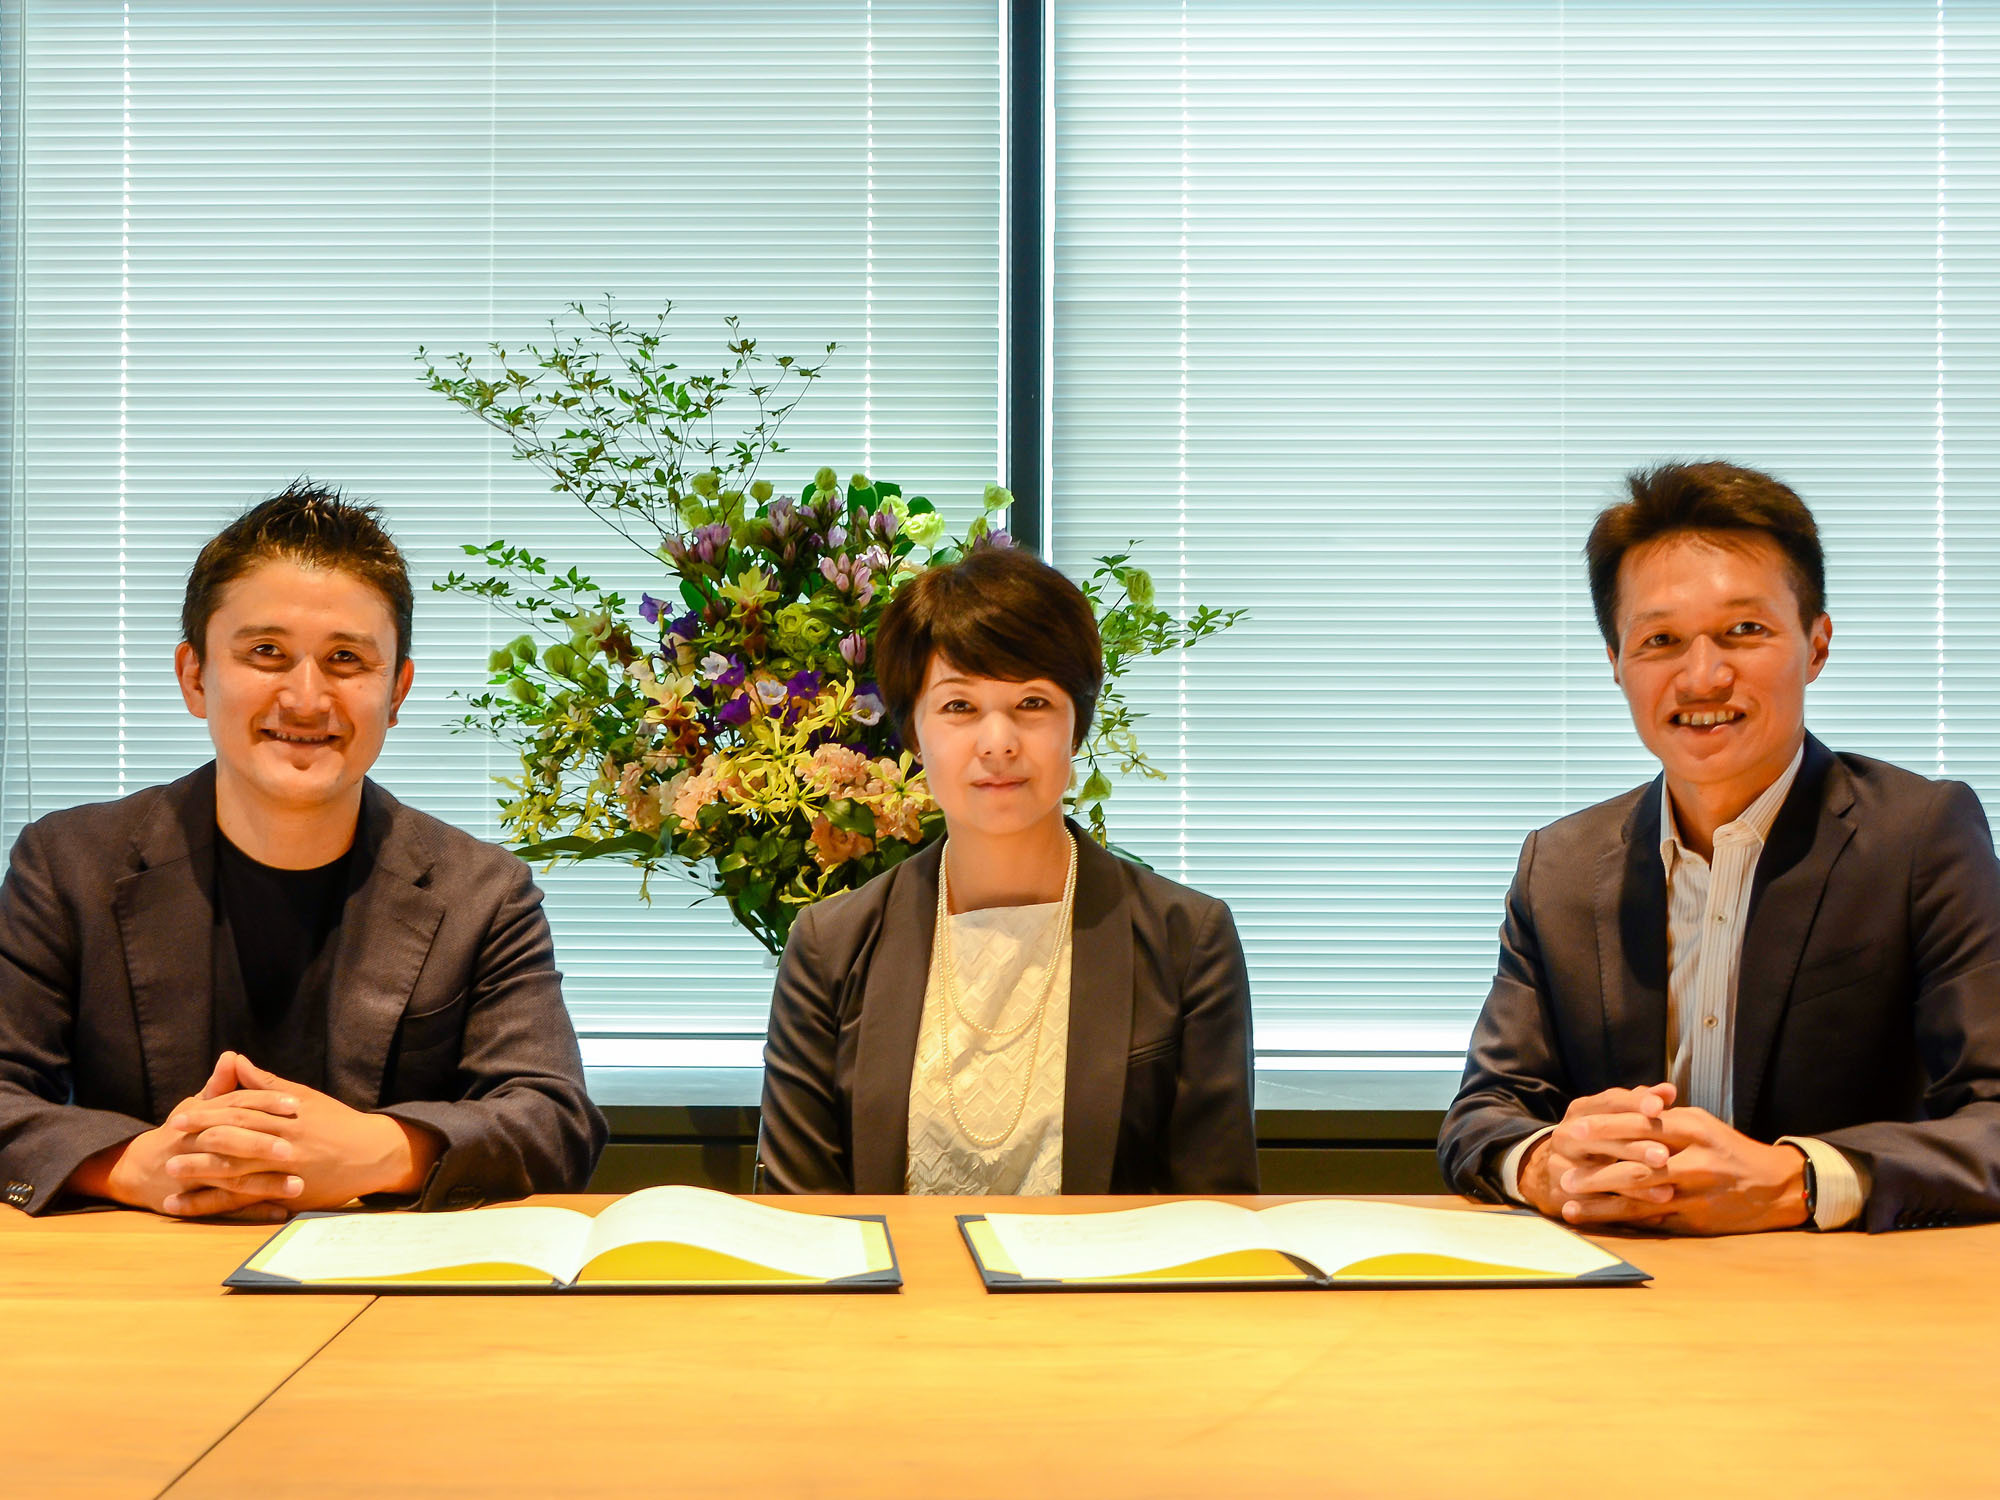 Minako Suematsu, chairperson of The Japan Times (center), and Sharing Economy Association, Japan directors Yuji Ueda, CEO of Gaiax Co. Ltd. (right), and Daisuke Shigematsu, CEO of Space Market Inc., sign an agreement in Tokyo on Sept. 5 to strengthen the Satoyama consortium's efforts to pass on information on the local economy. |   SHINOBU YAMADA